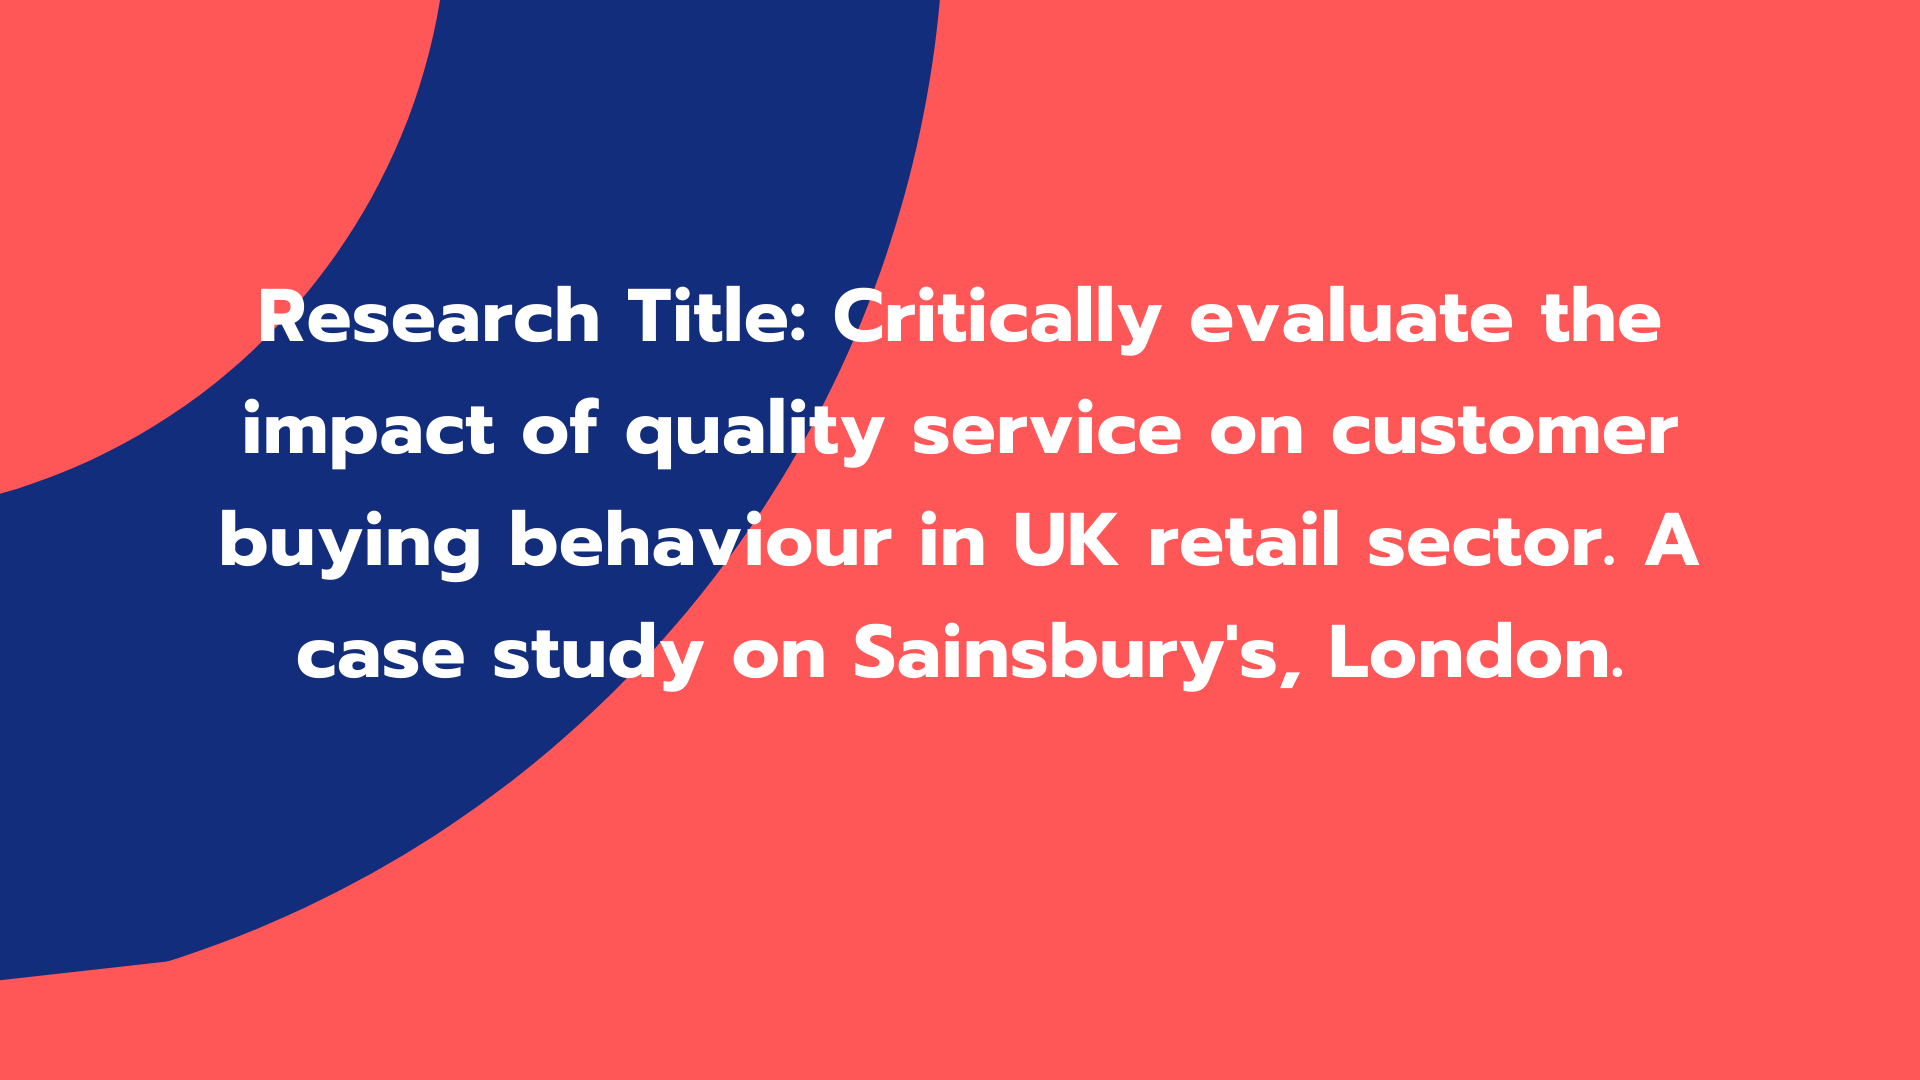 Critically evaluate the impact of quality service on customer buying behaviour in UK retail sector